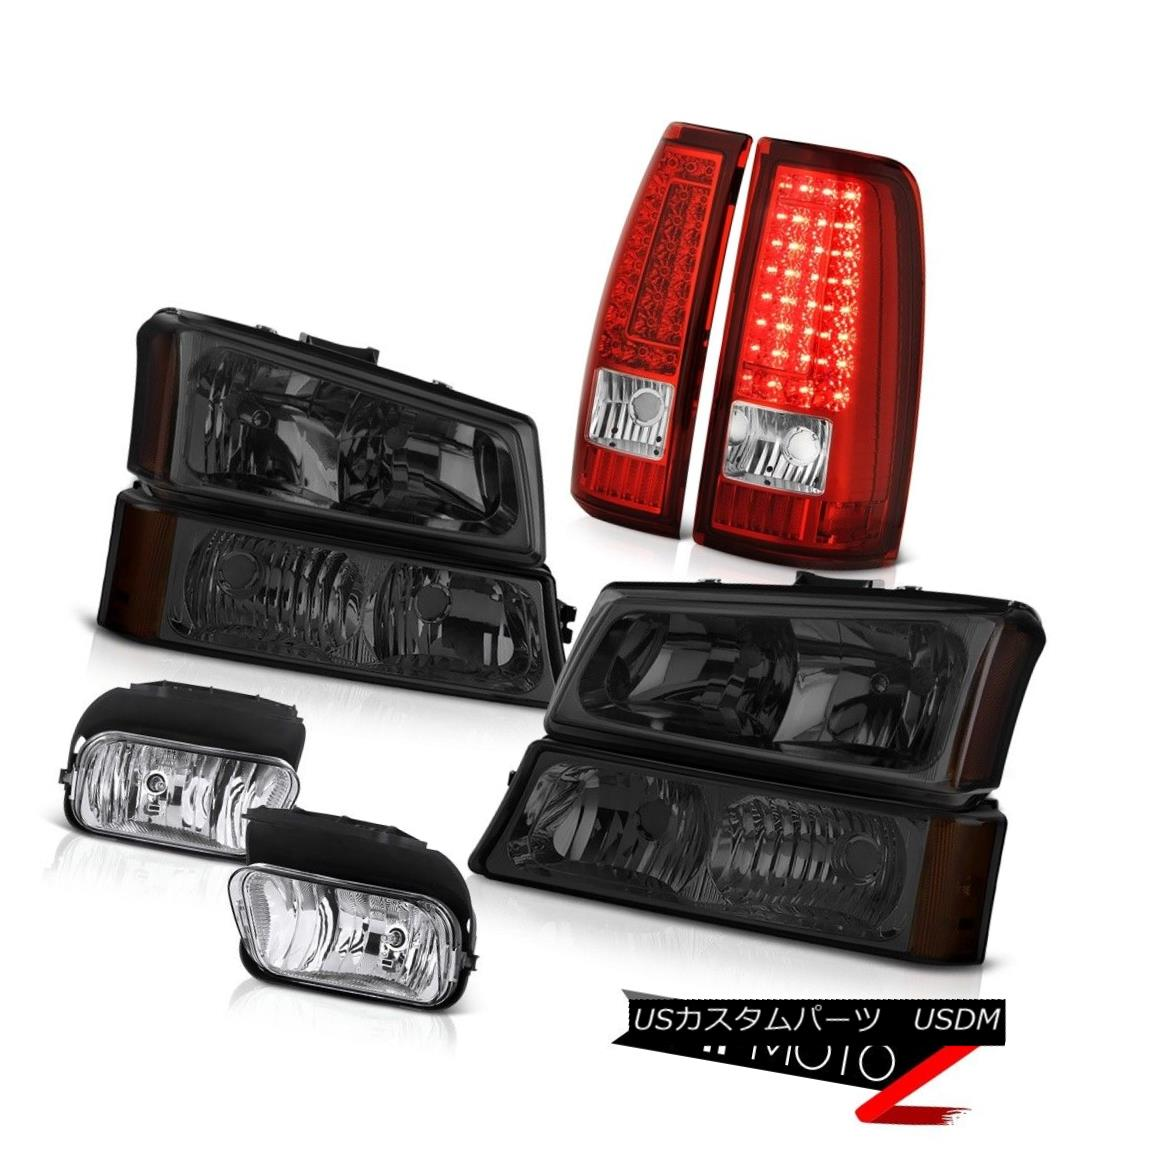 ヘッドライト 03-06 Silverado Euro Chrome Foglights Tail Lights Smoked Parking Light Headlamps 03-06 Silverado Euro Chrome Foglightsテールライトスモークパーキングライトヘッドランプ